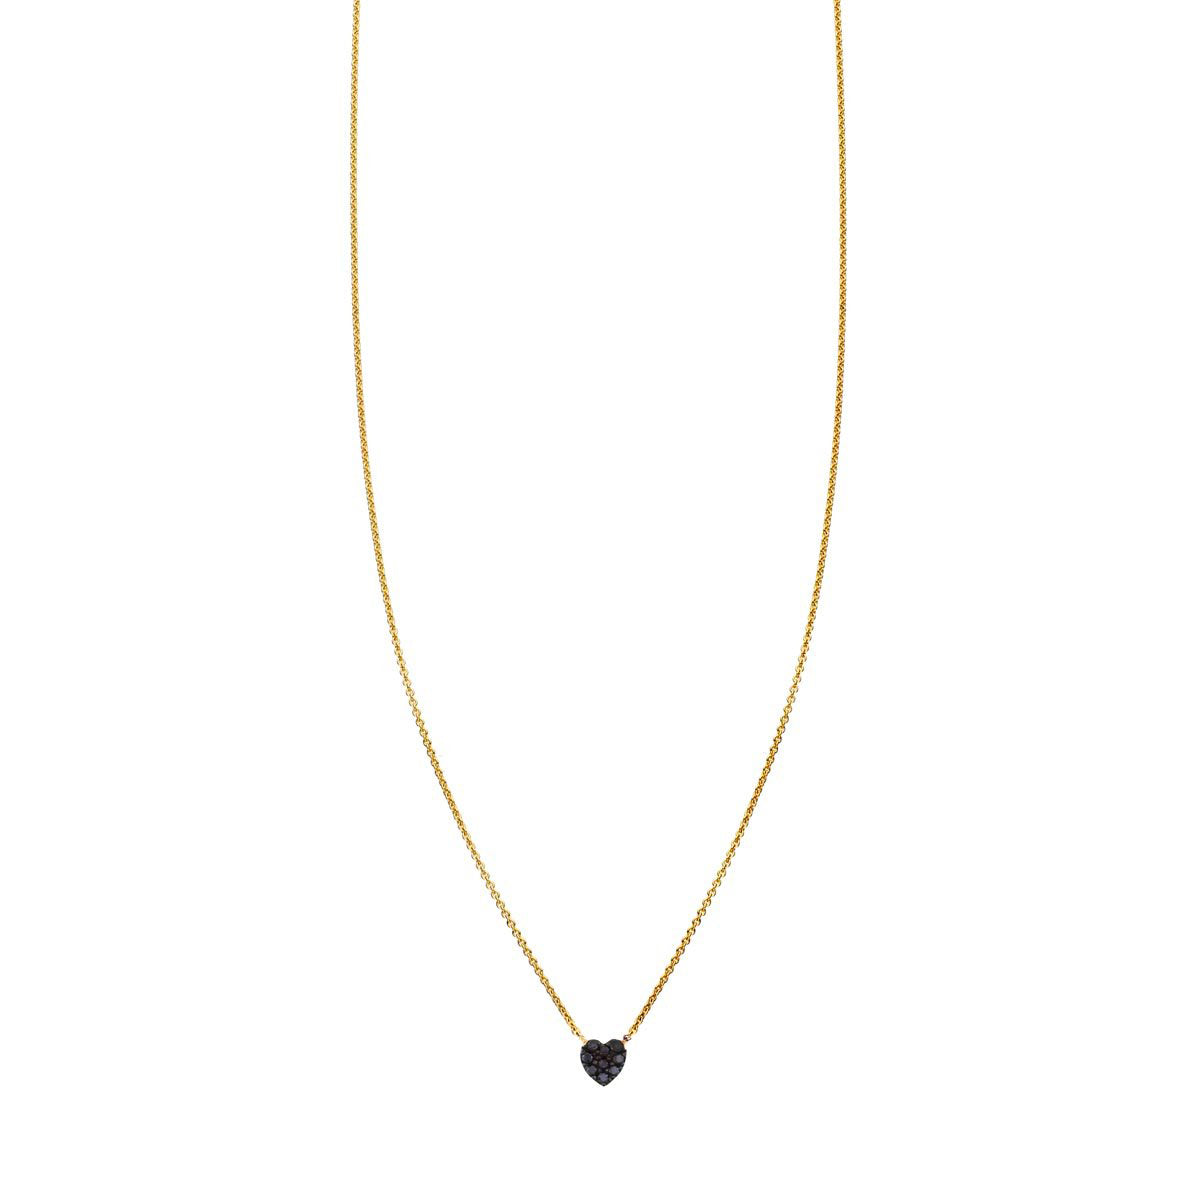 Image of a Black Diamond Tiny Heart Necklace